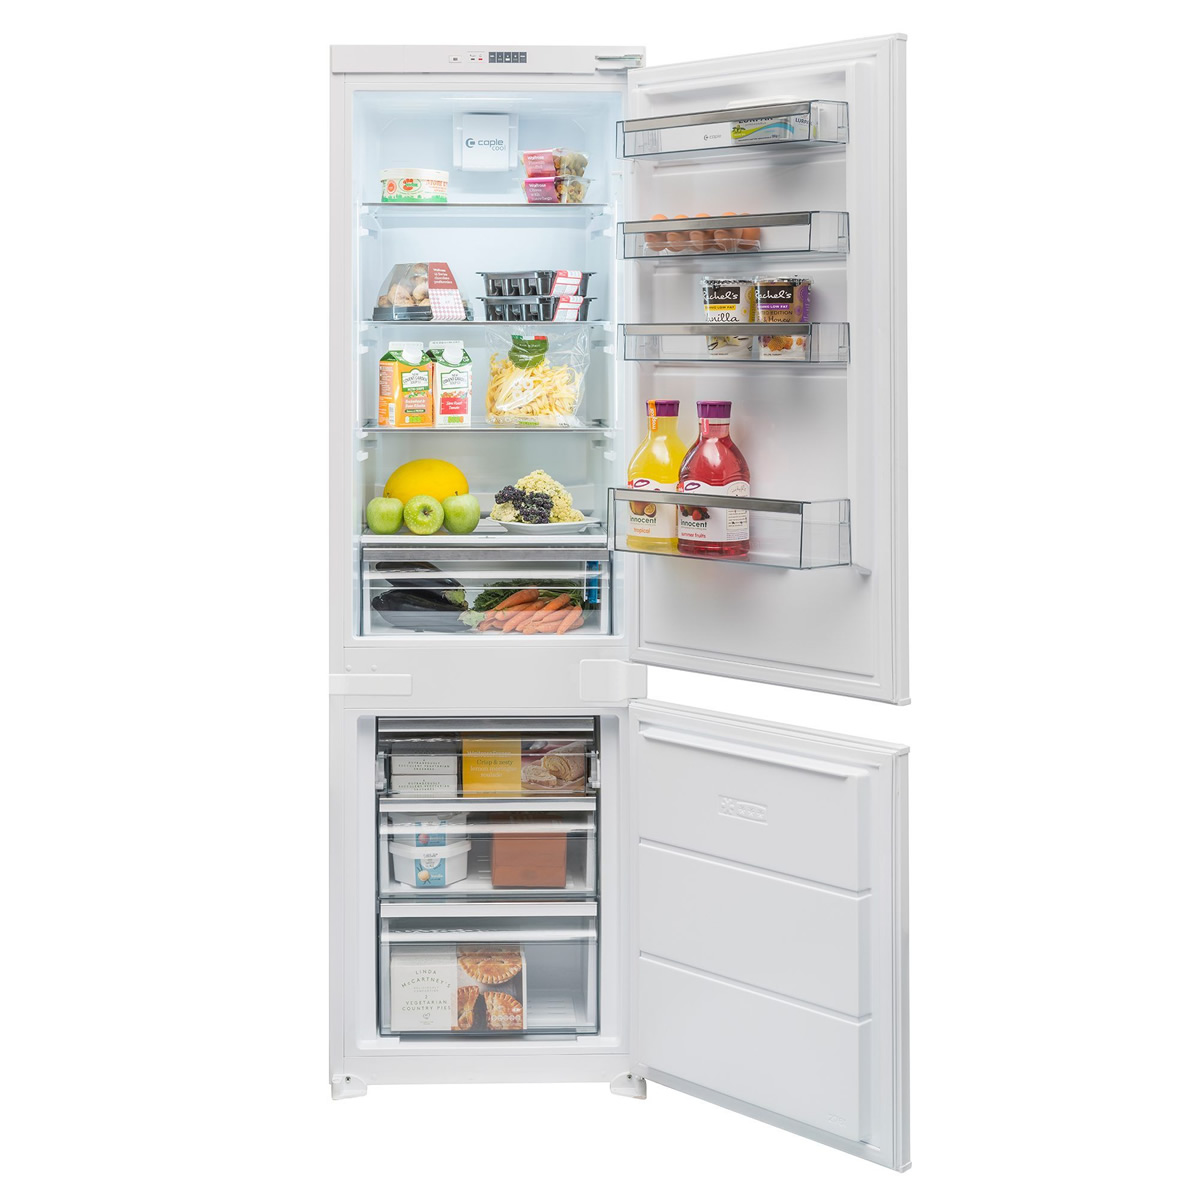 256litre Integrated Fridge Freezer Frost Free Class A++